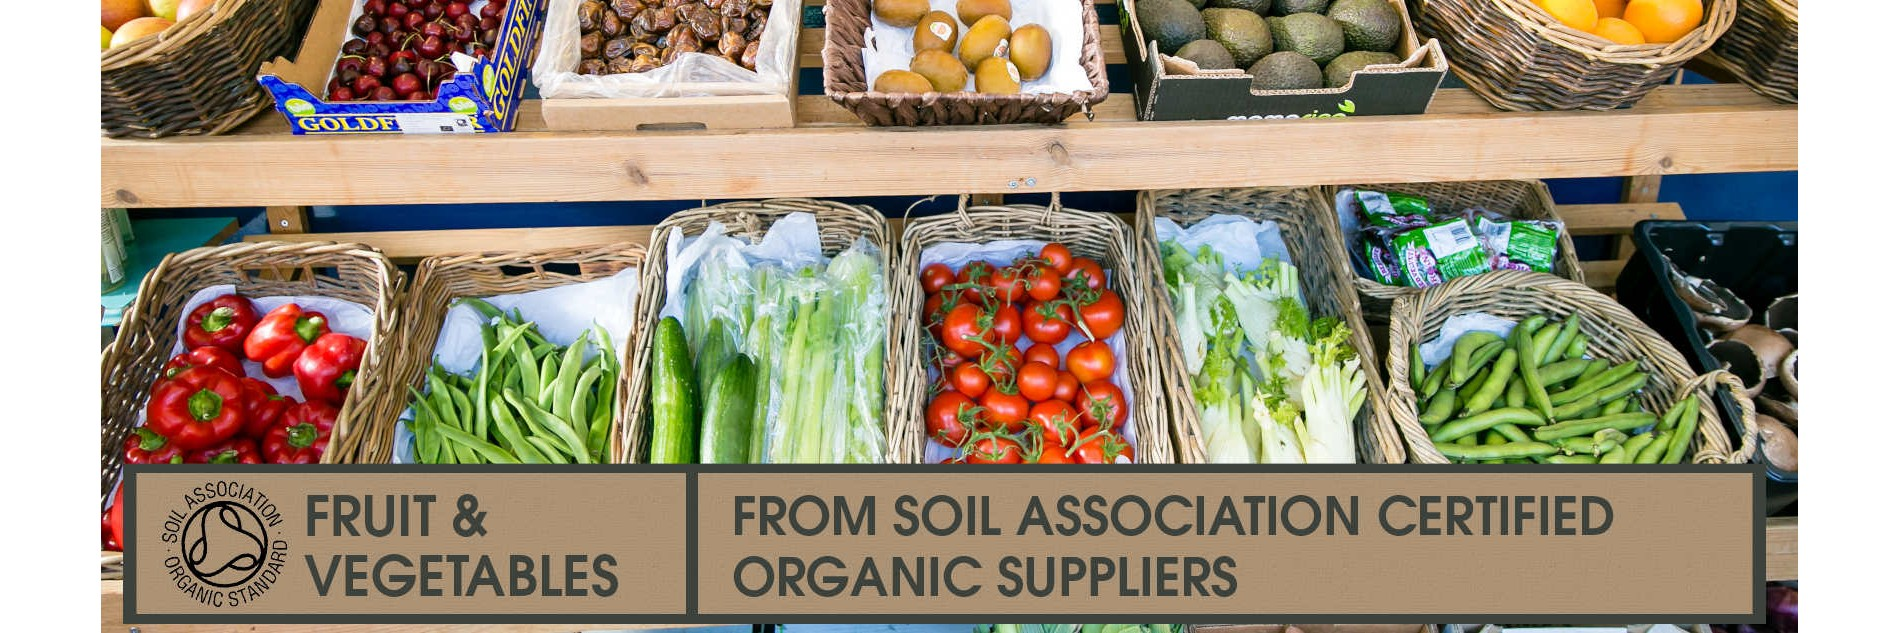 Fruit and Veg from Soil Association certified organic suppliers